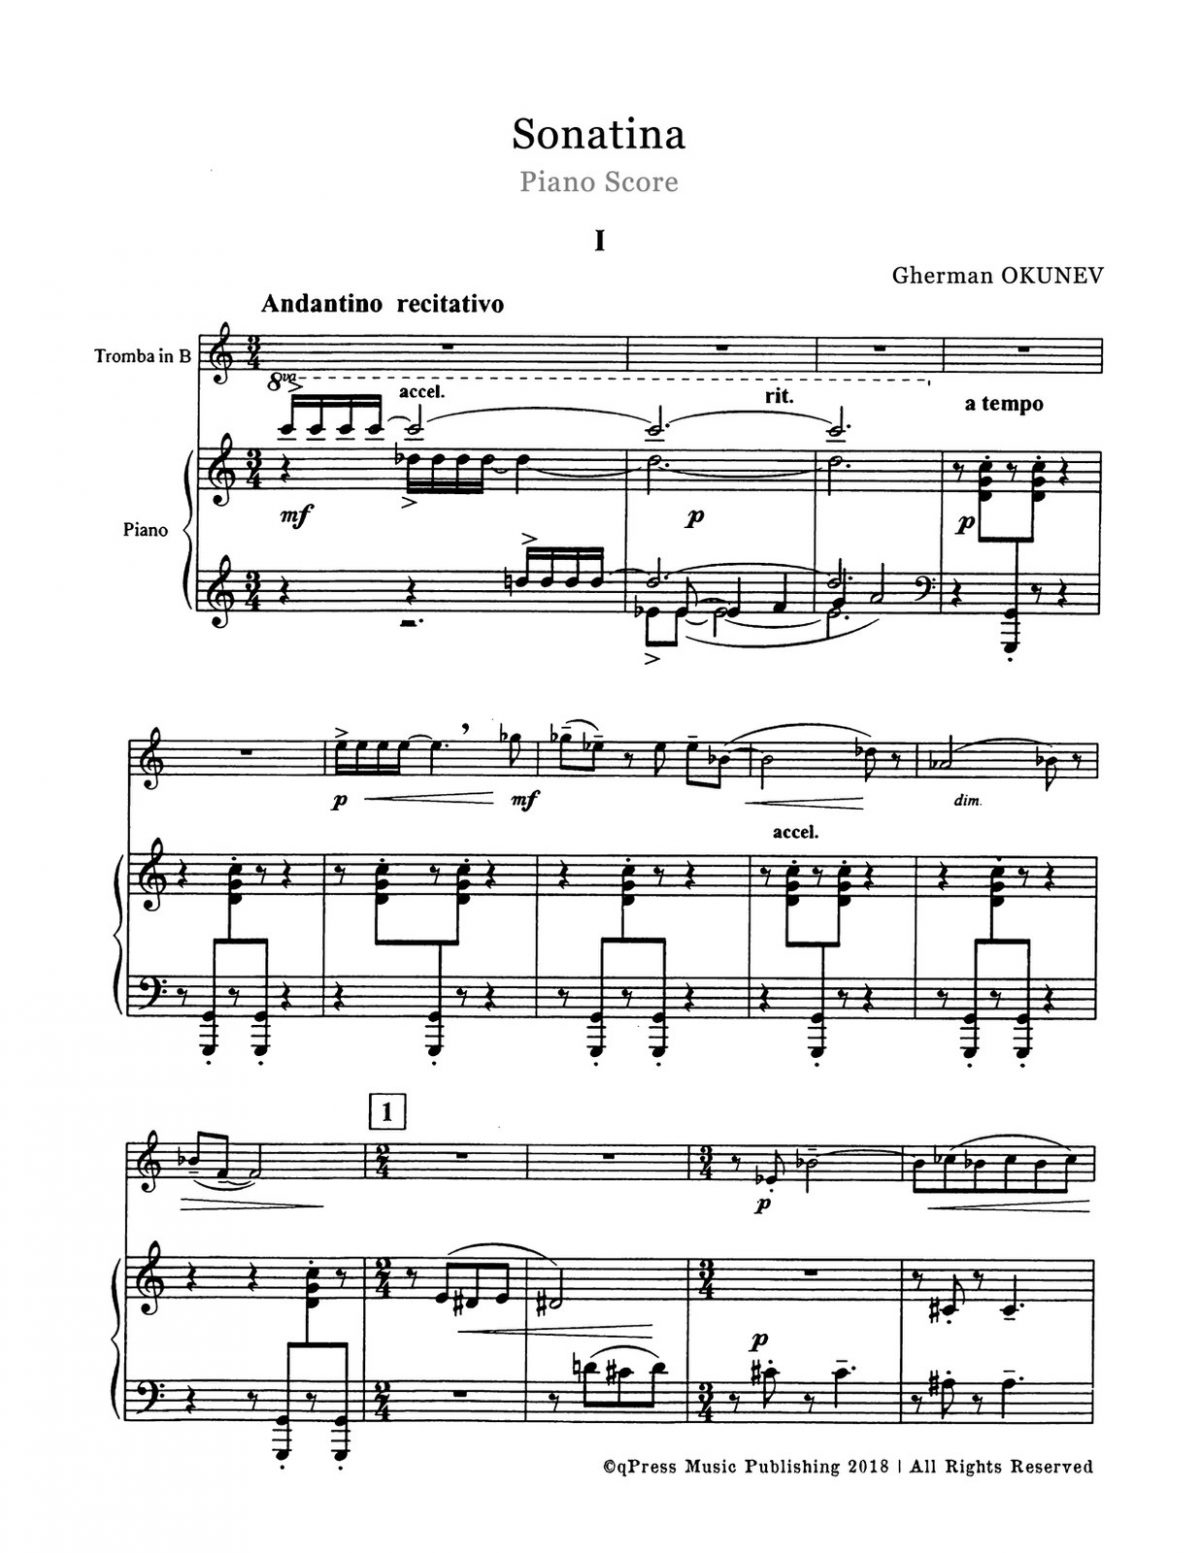 Okunev, Sonatina (Score and Part)-p09